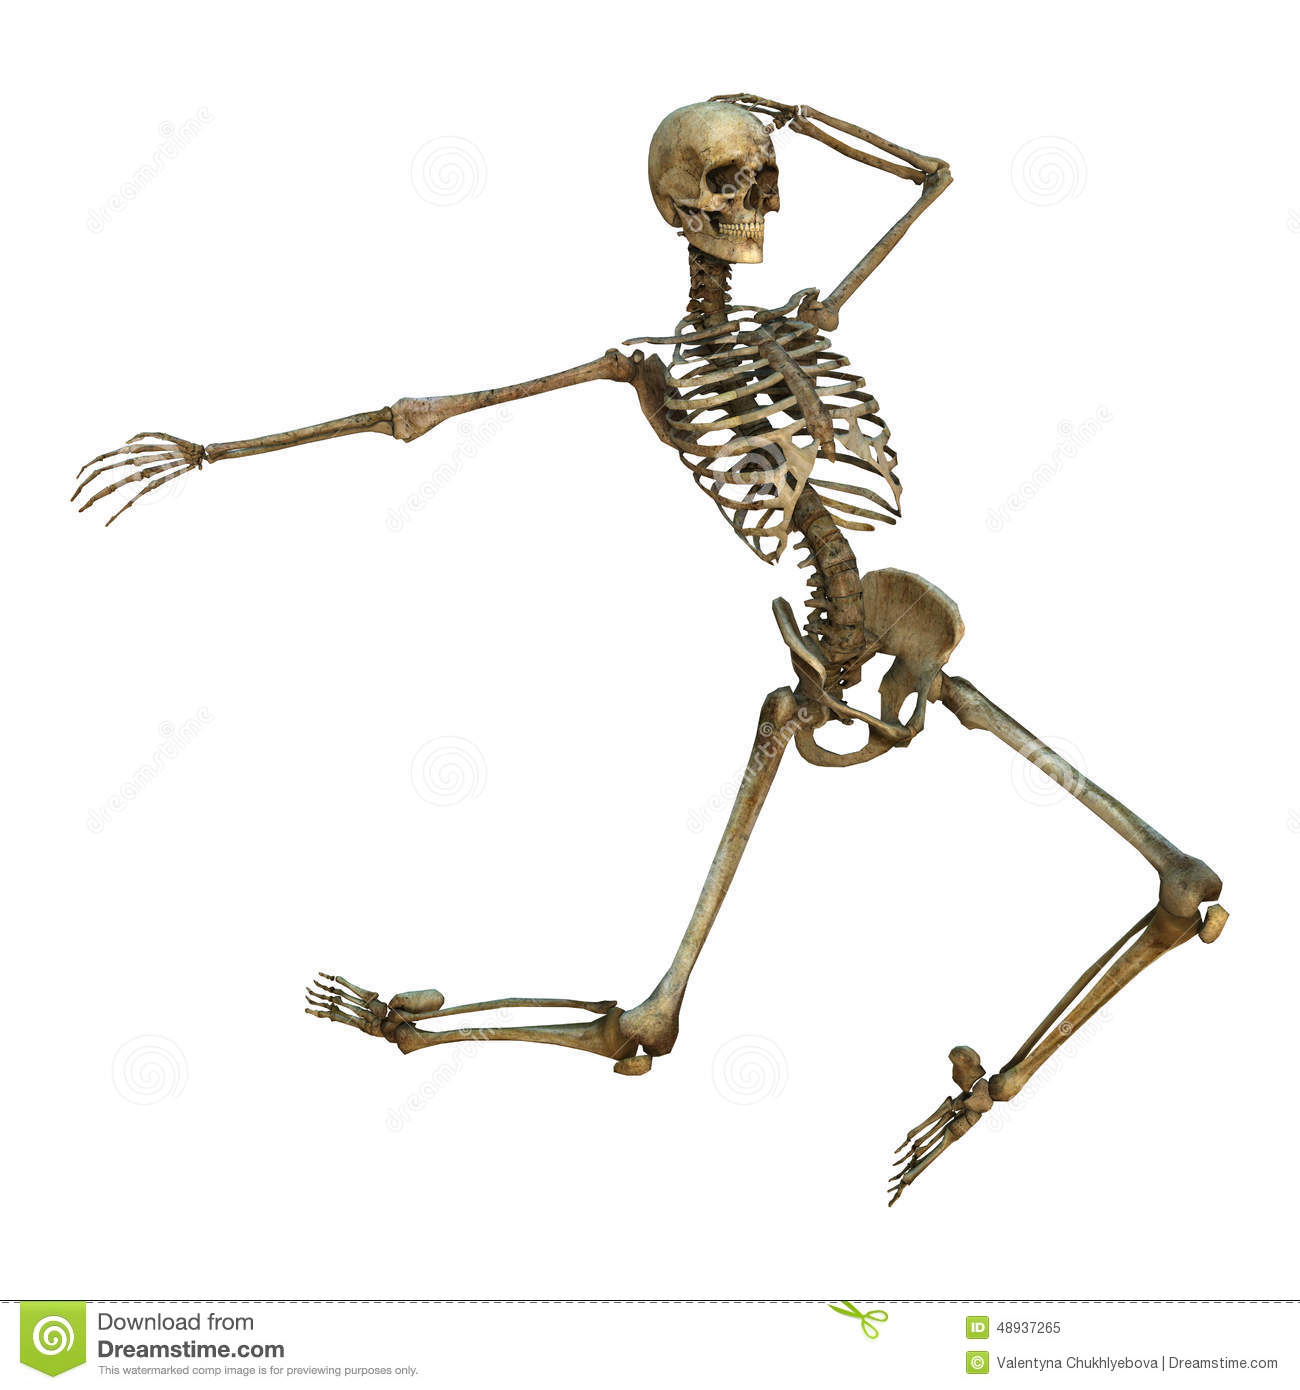 ... render of a human dancing skeleton isolated on white background